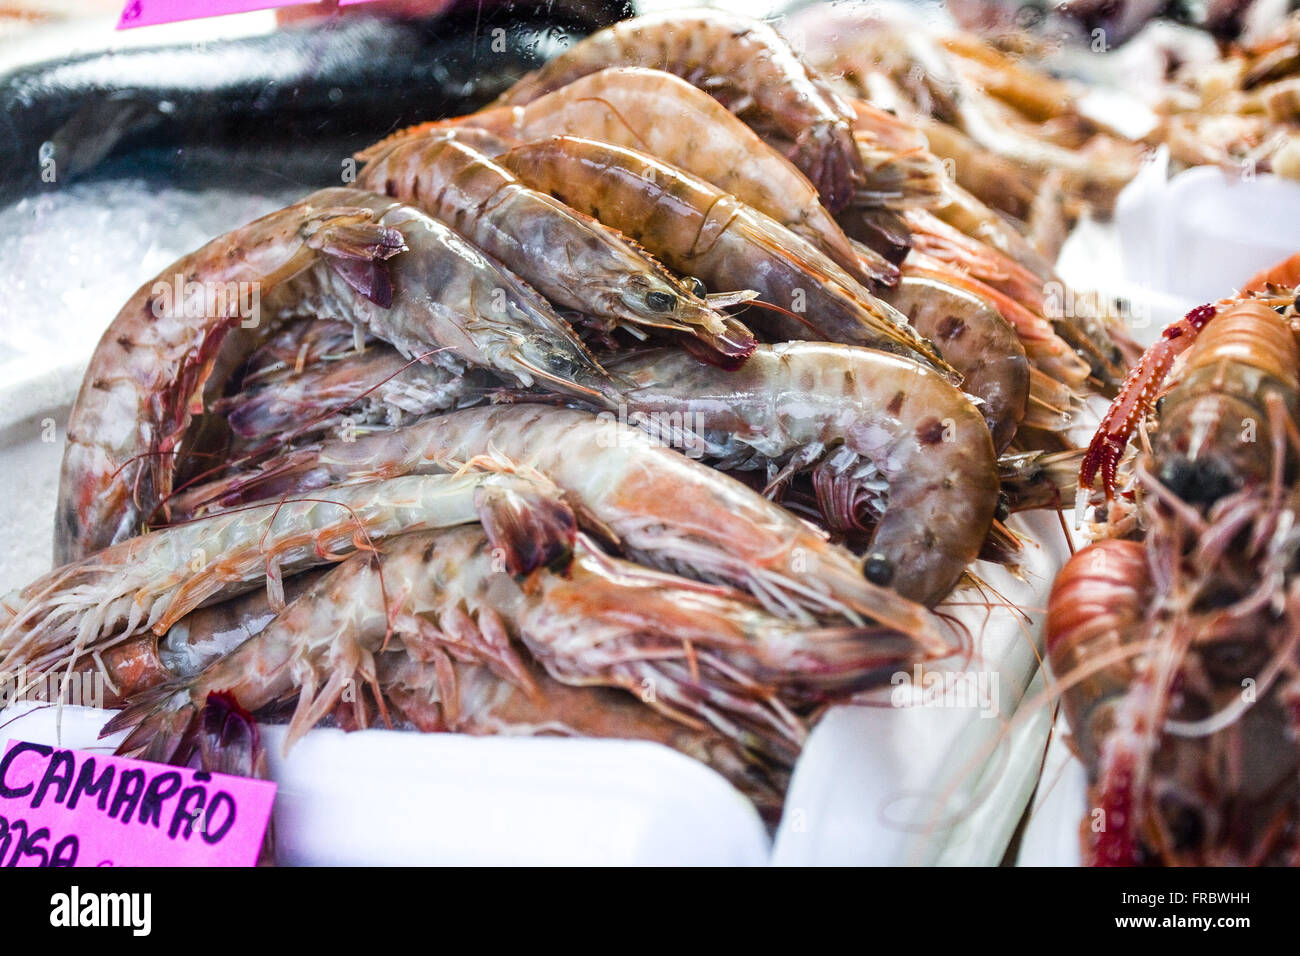 Cameroon sale at fish market - Stock Image